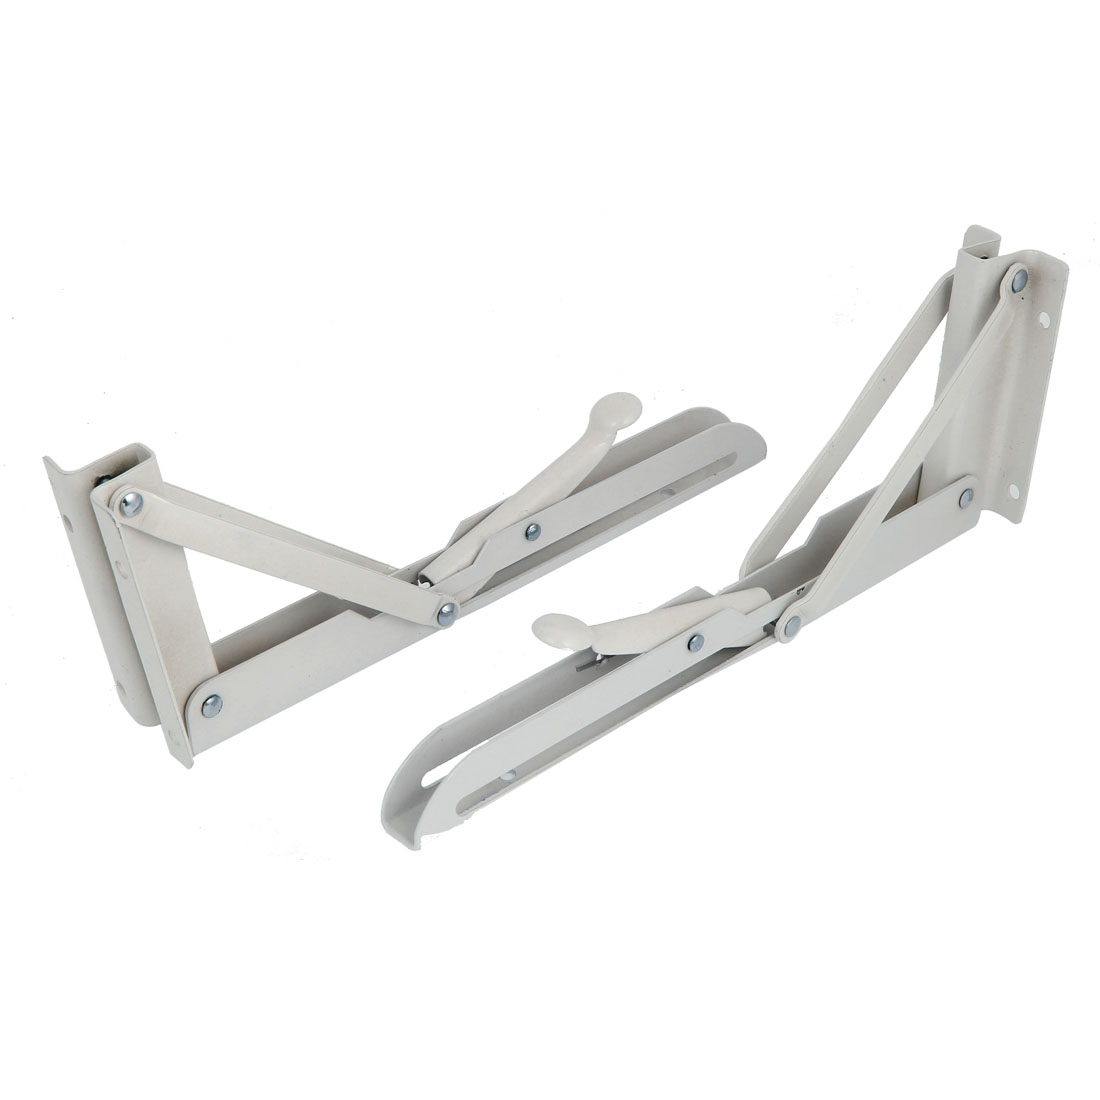 2 Pcs 25cmx9.5cm L Shaped 90 Degree Angle Folding Bench Shelf Table Bracket